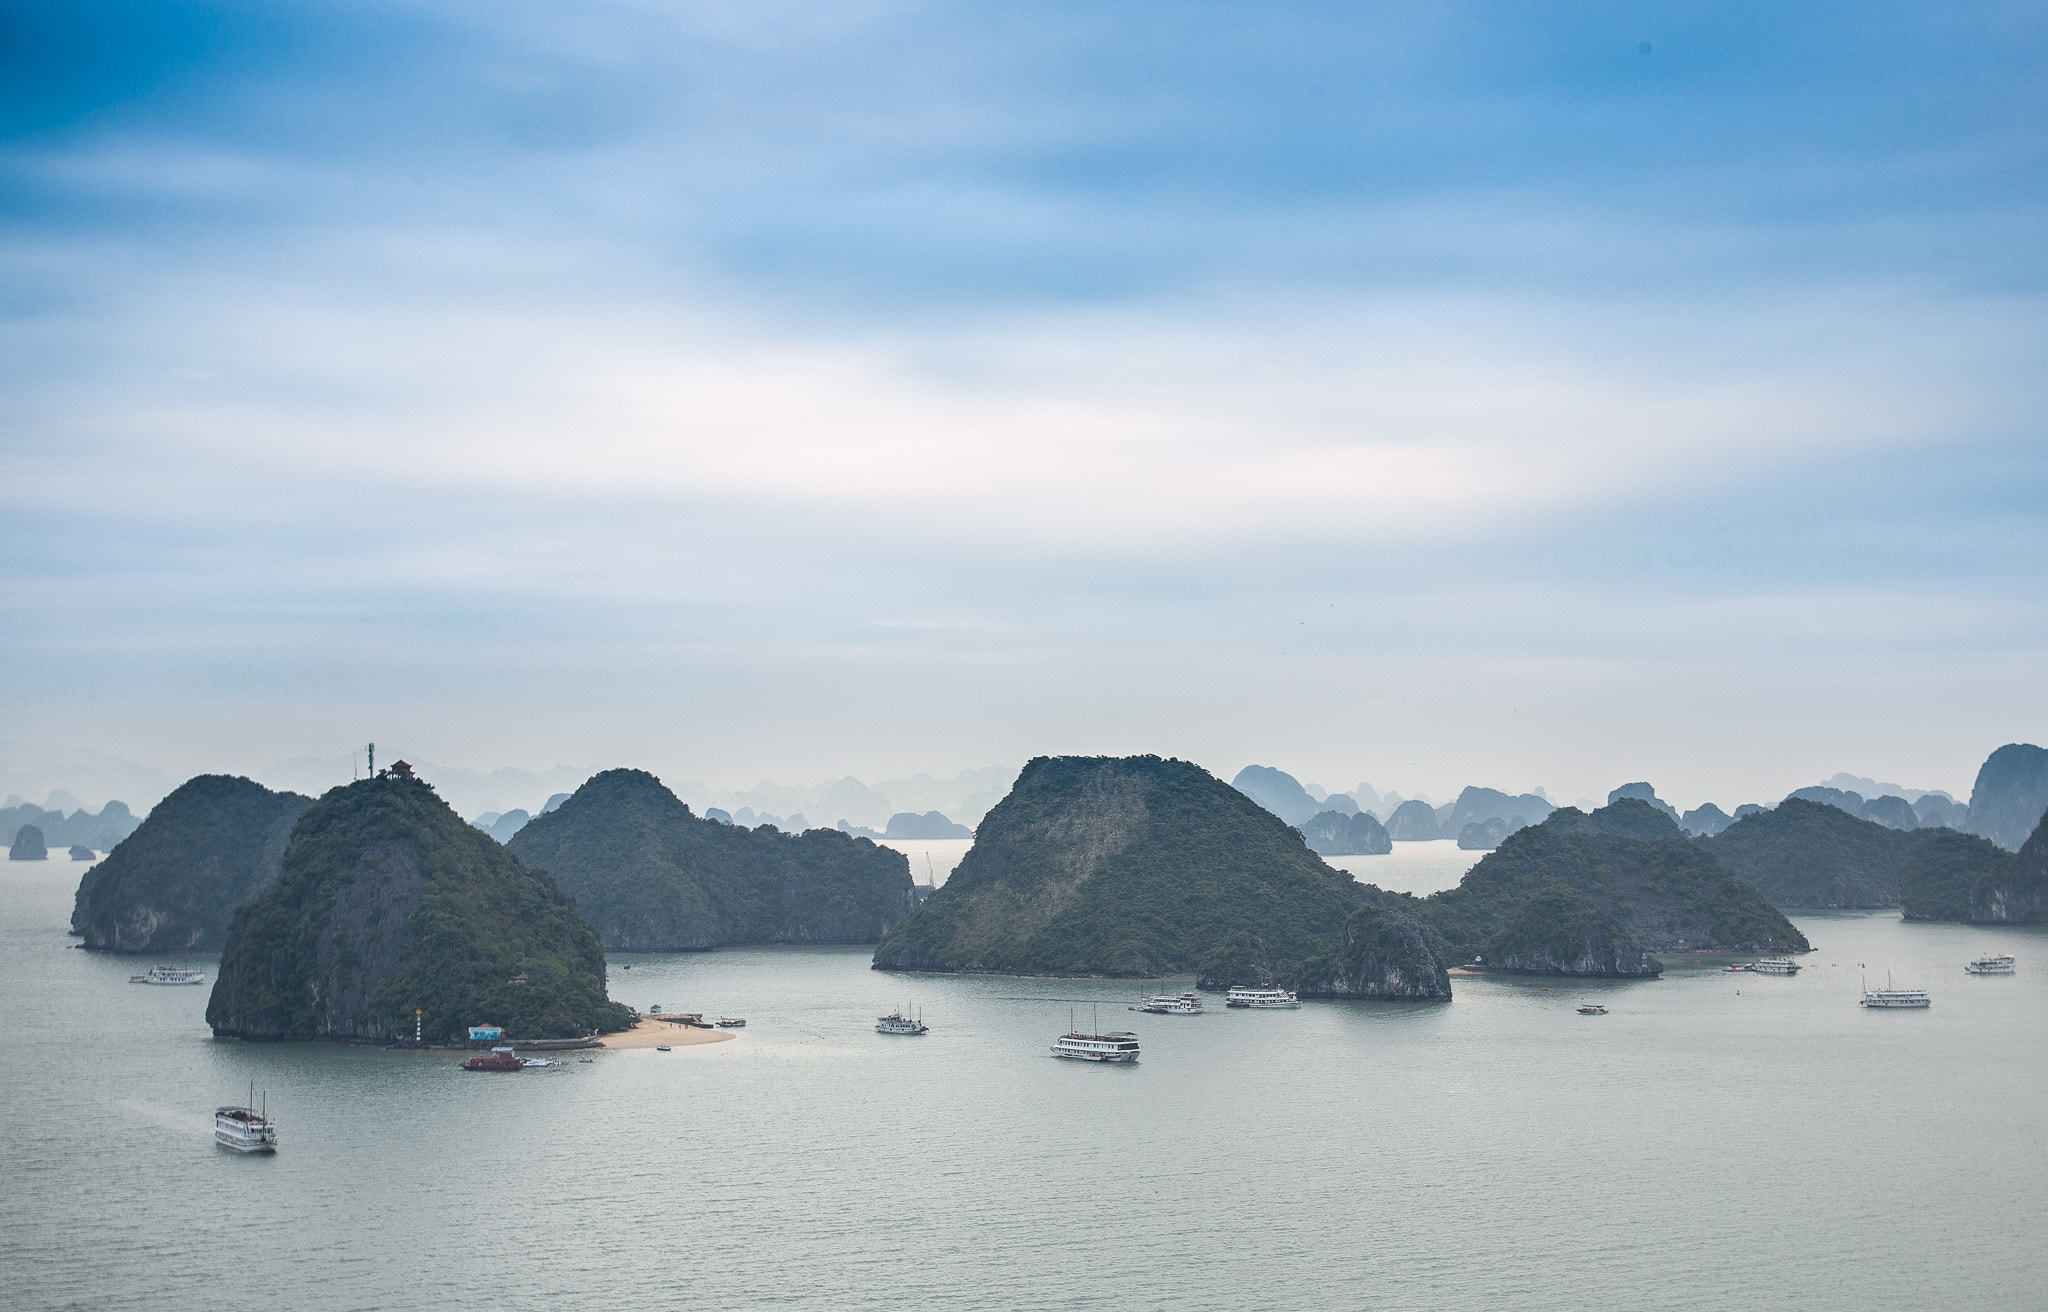 Photograph Ha Long Bay by Aaron Von Hagen on 500px